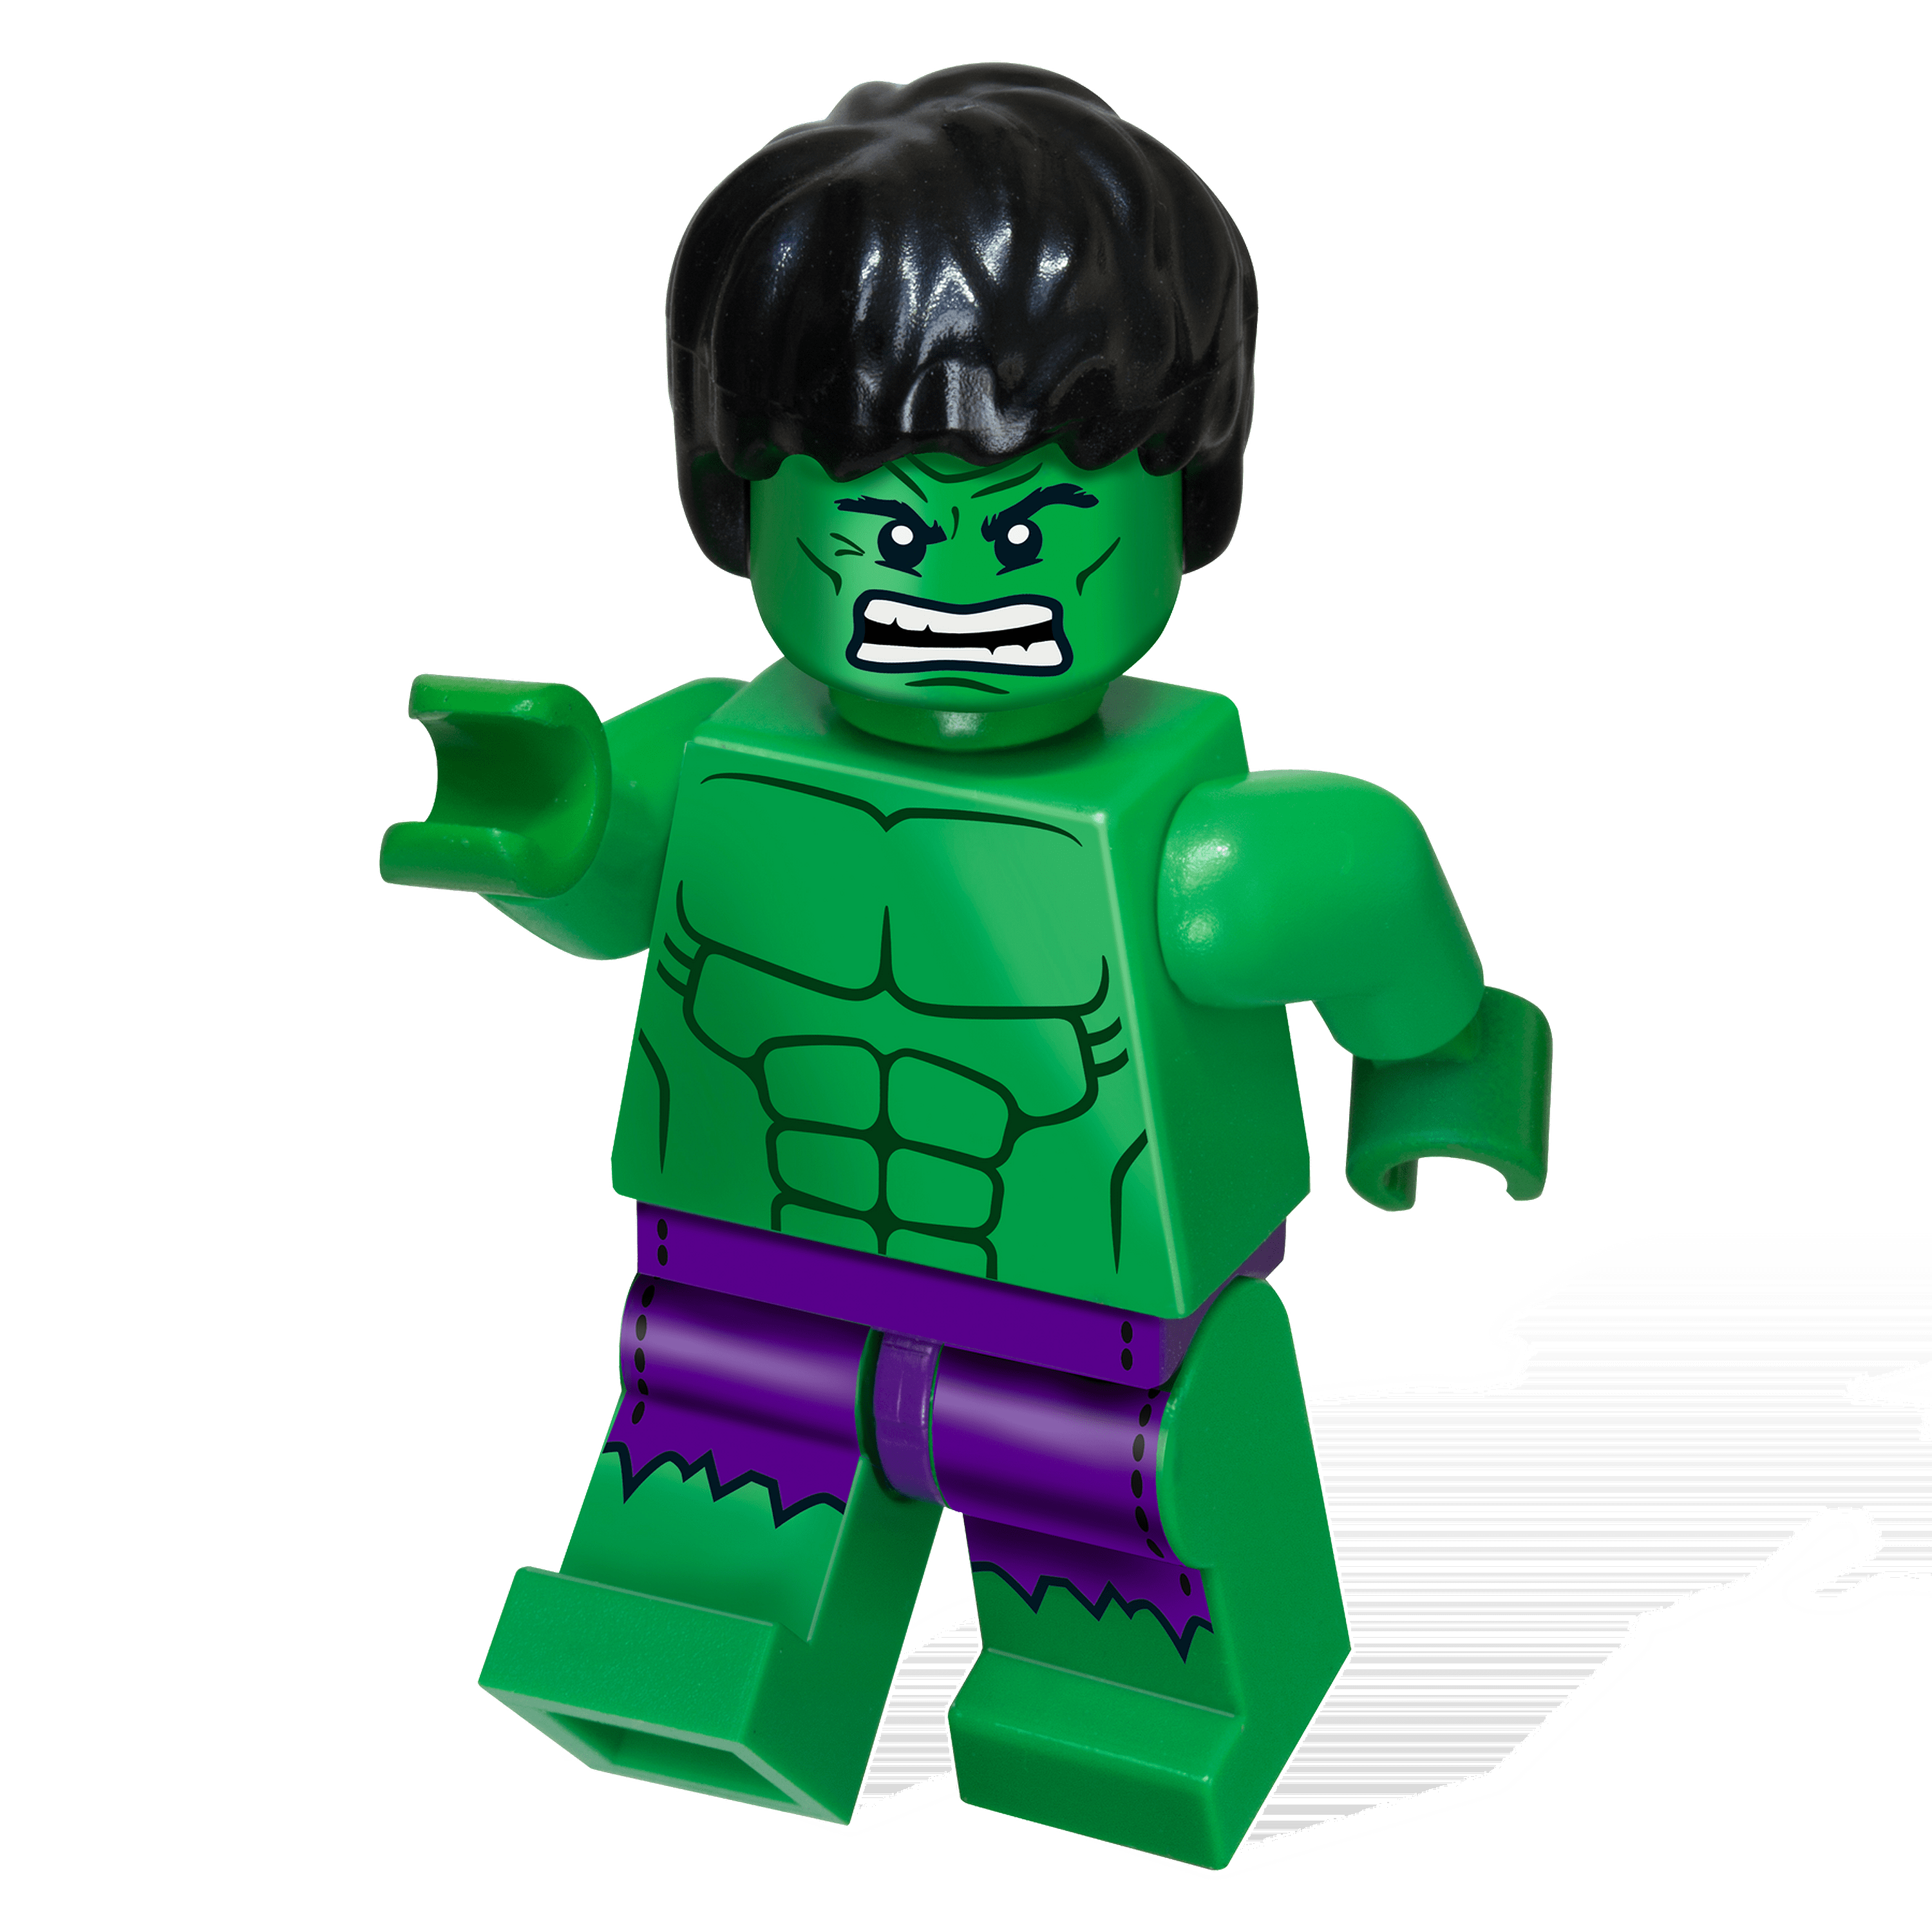 No money clipart free picture download Free Ninjago Clipart at GetDrawings.com | Free for personal use Free ... picture download